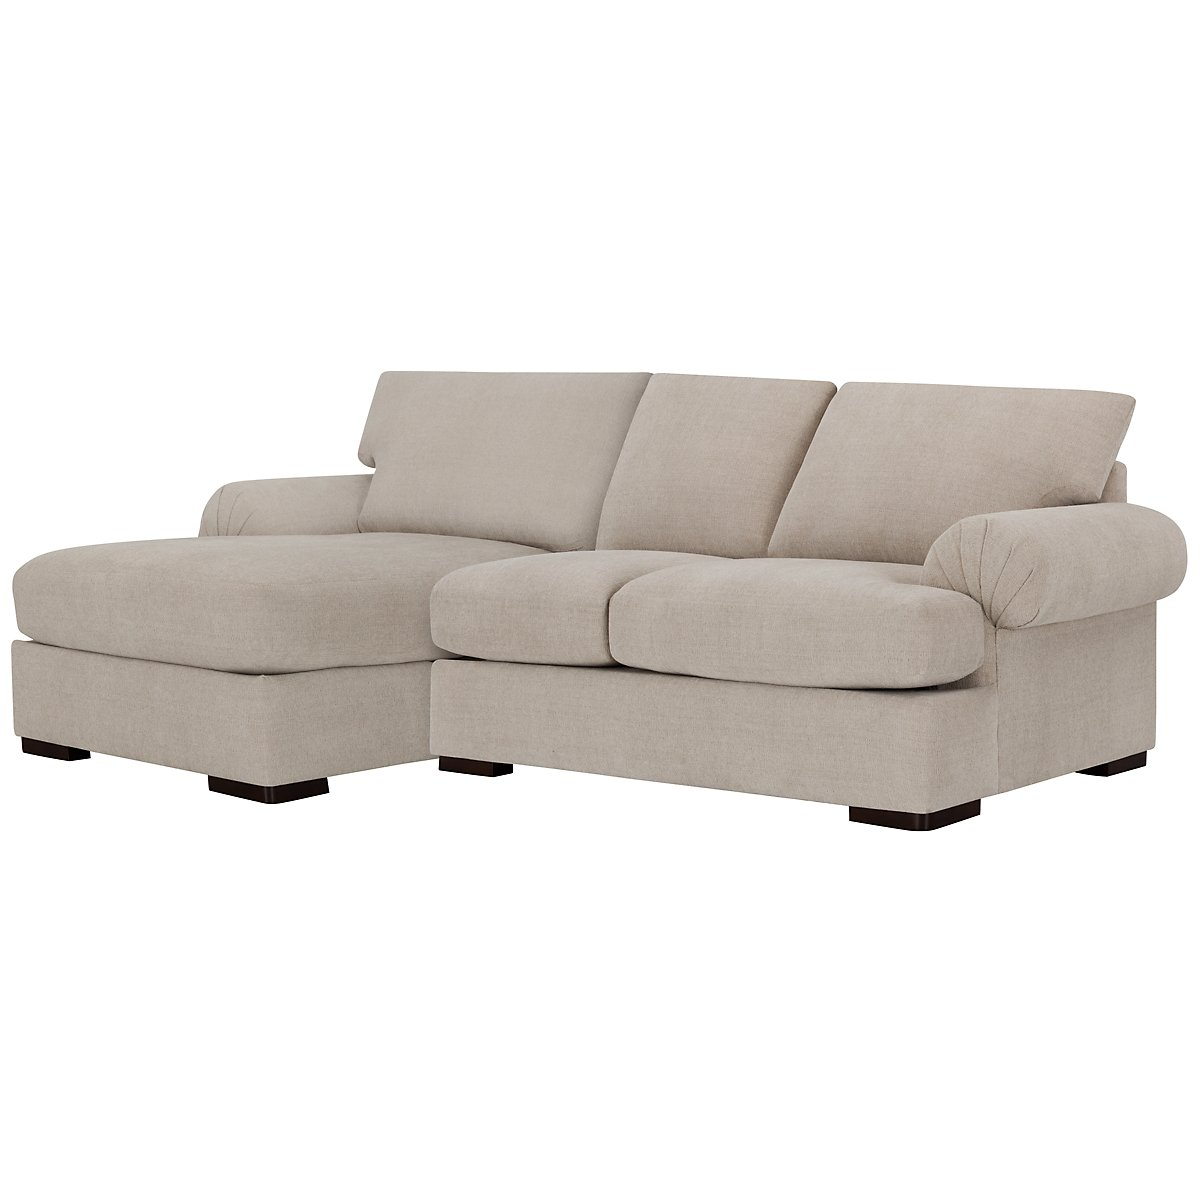 Belair Light Taupe Fabric Left Chaise Sectional